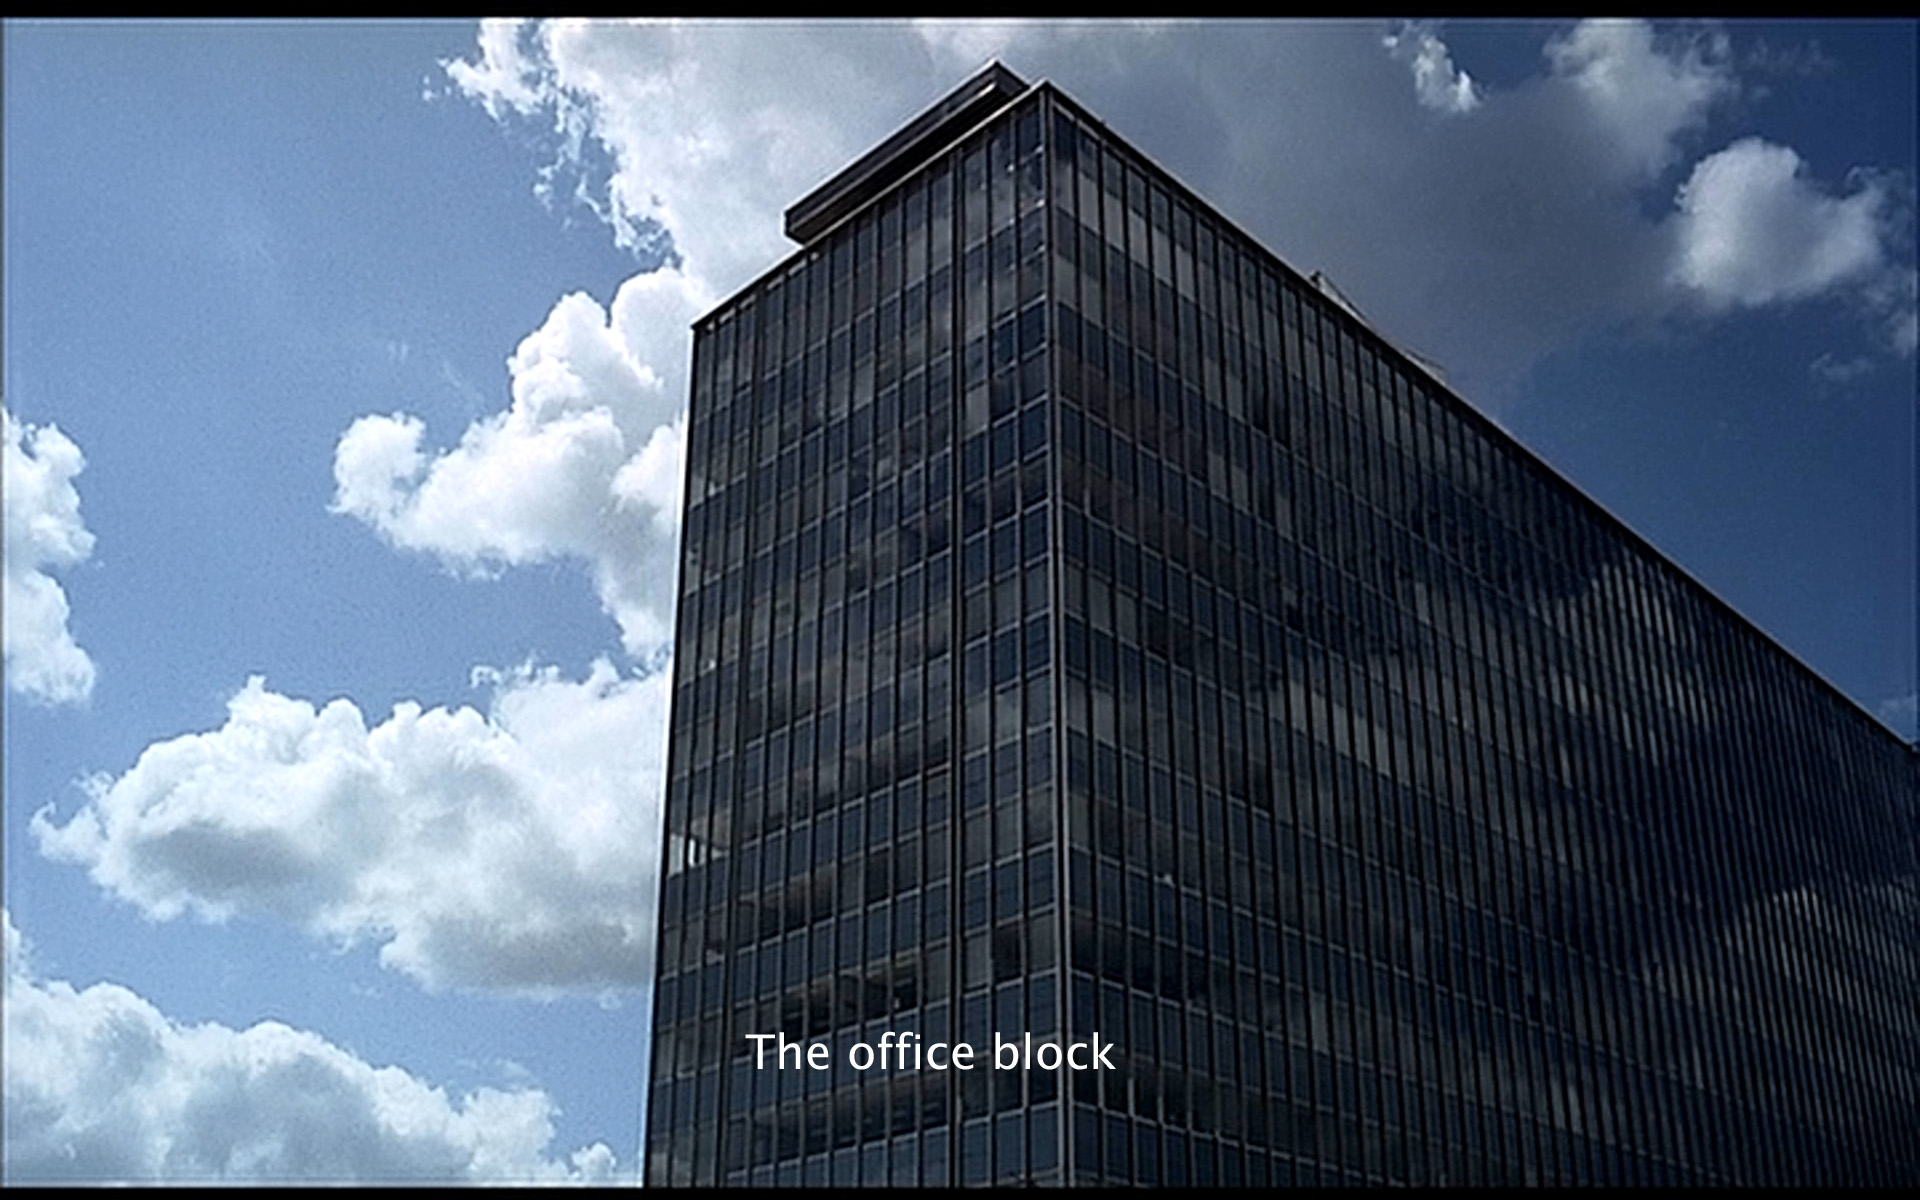 The office block